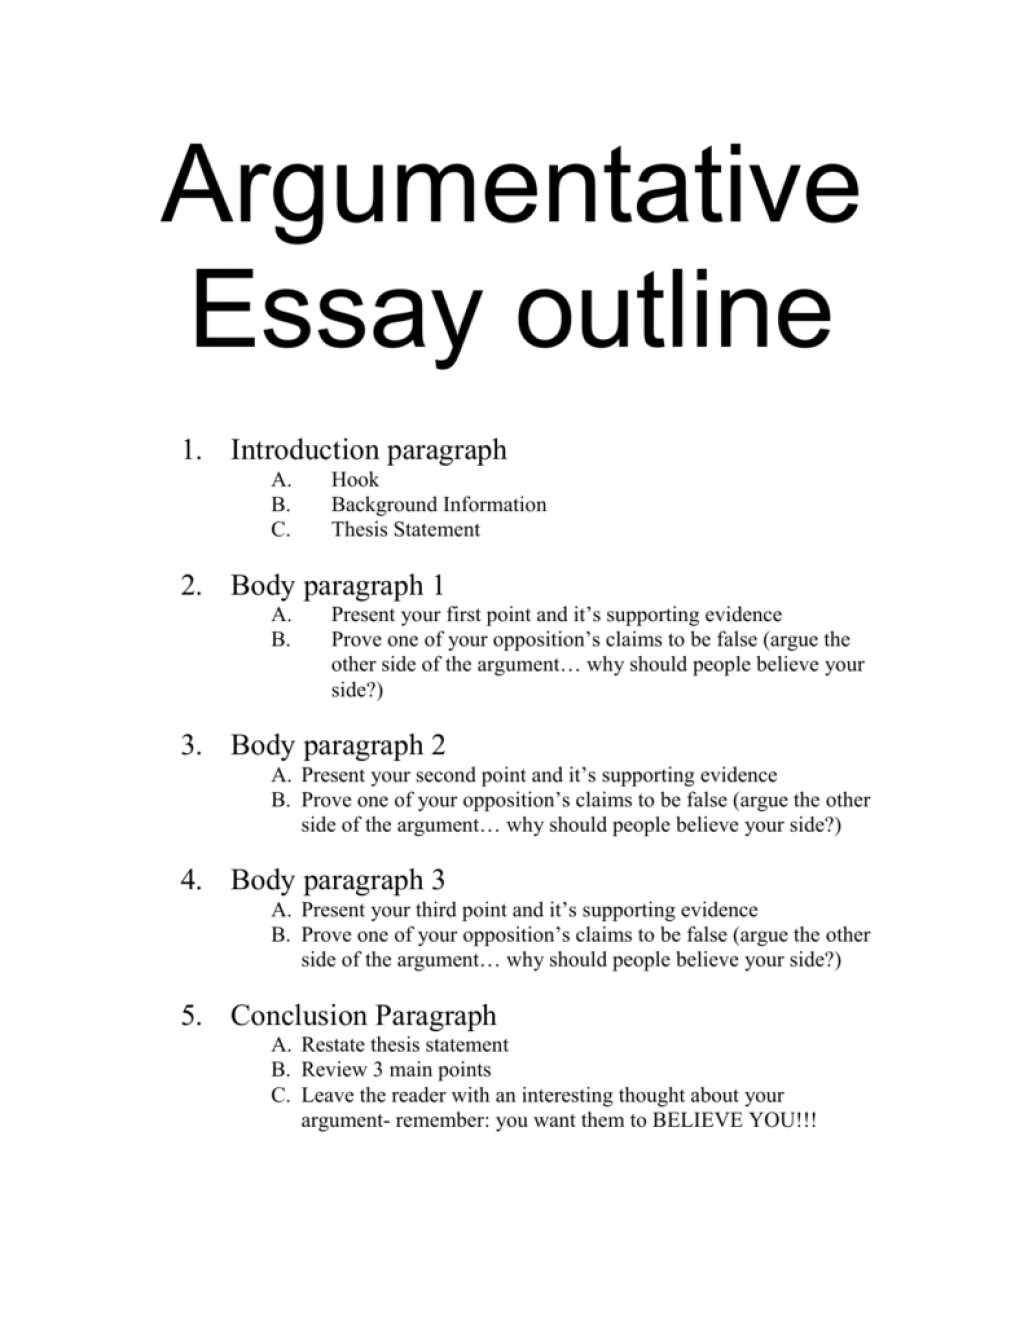 005 The Thesis Statement Or Claim Of An Argumentative Essay Should 009214476 1 Outstanding Quizlet Large